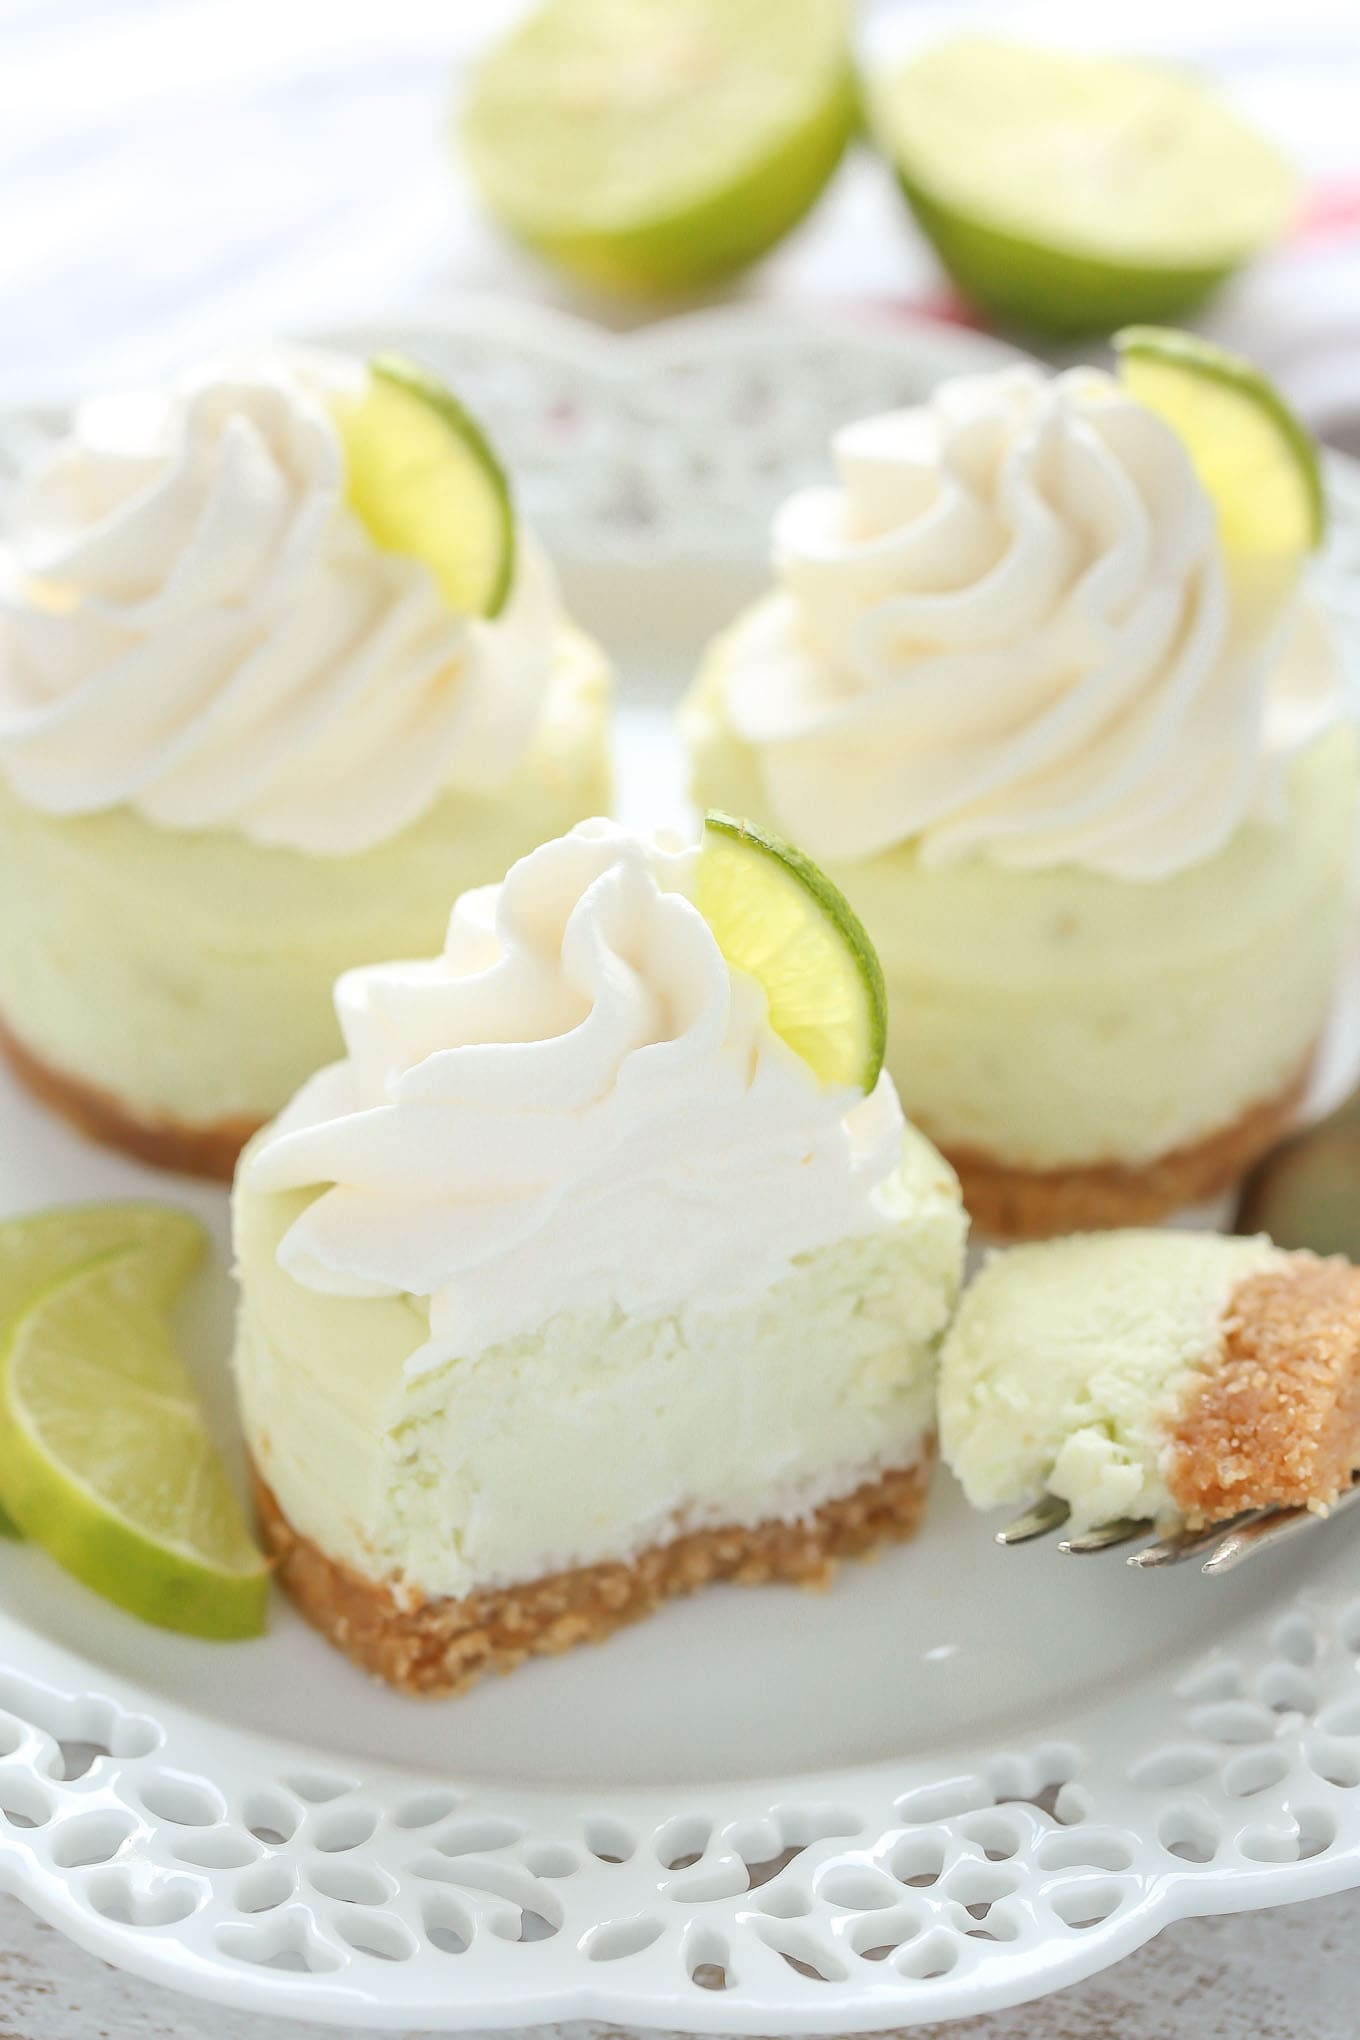 A white plate with three mini key lime cheesecakes on it. A lime wedge rests on one side and a fork rests on the other.